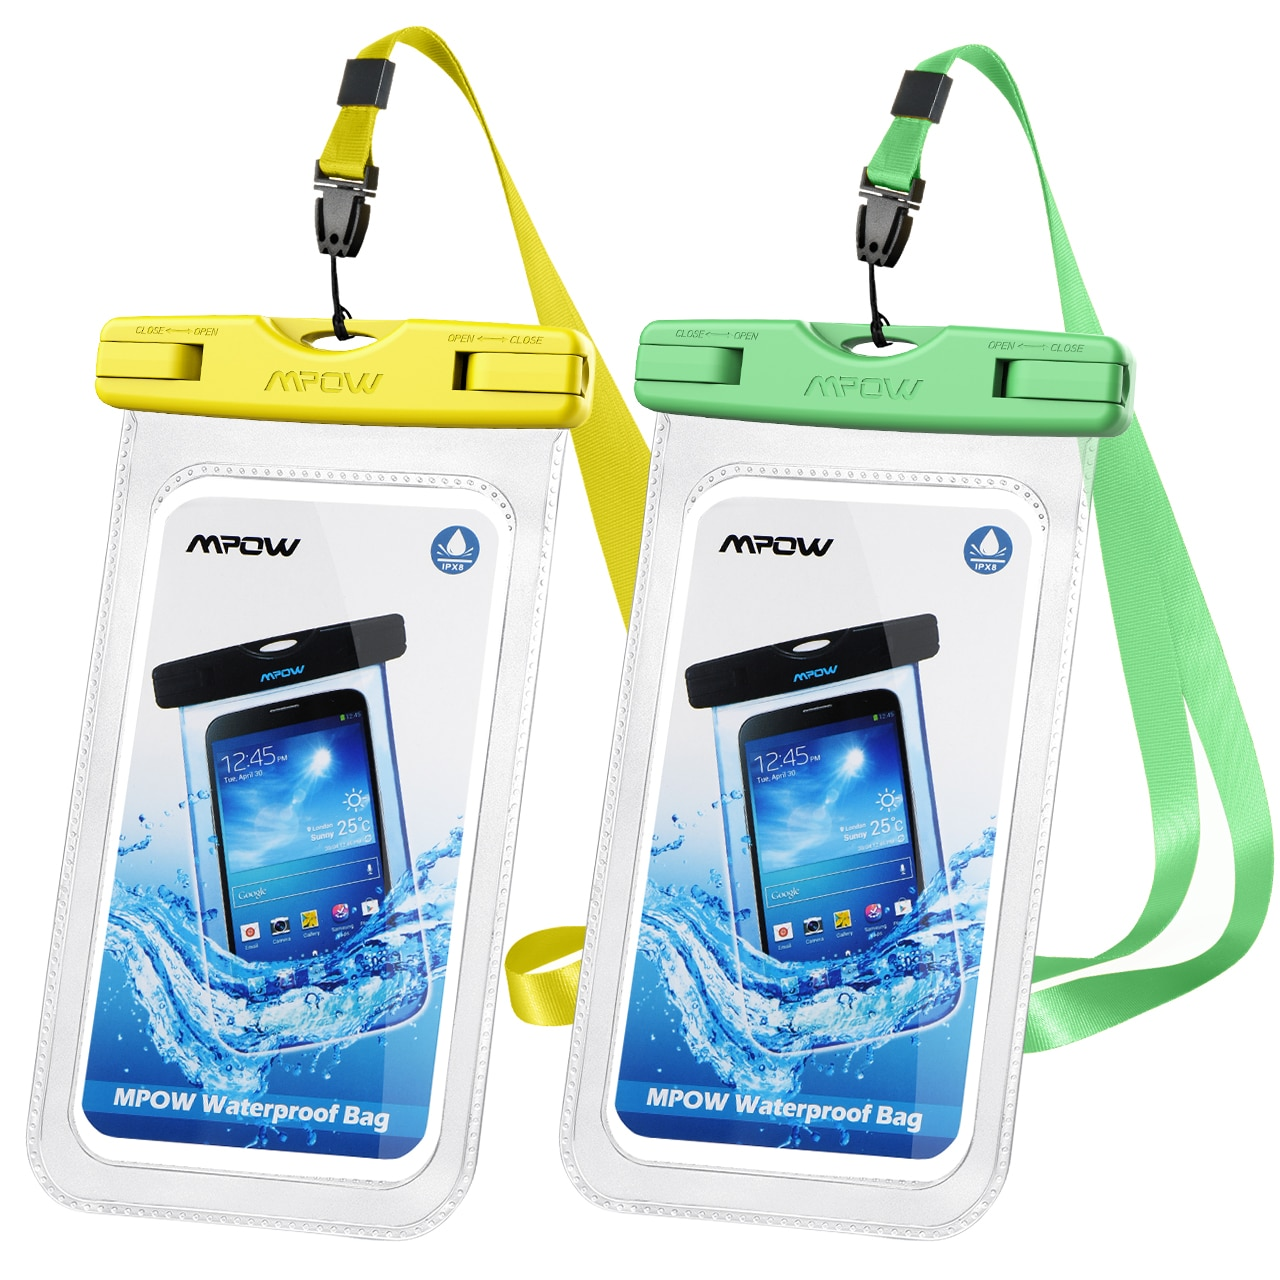 H7638d21360a748a0bcc716e8e809692e3 - 2PCS Mpow 097 IPX8 Waterproof Phone Bag Pouch Case Universal for 7.0 inch Phones Home Button Cutout Take Photo Underwater IP68